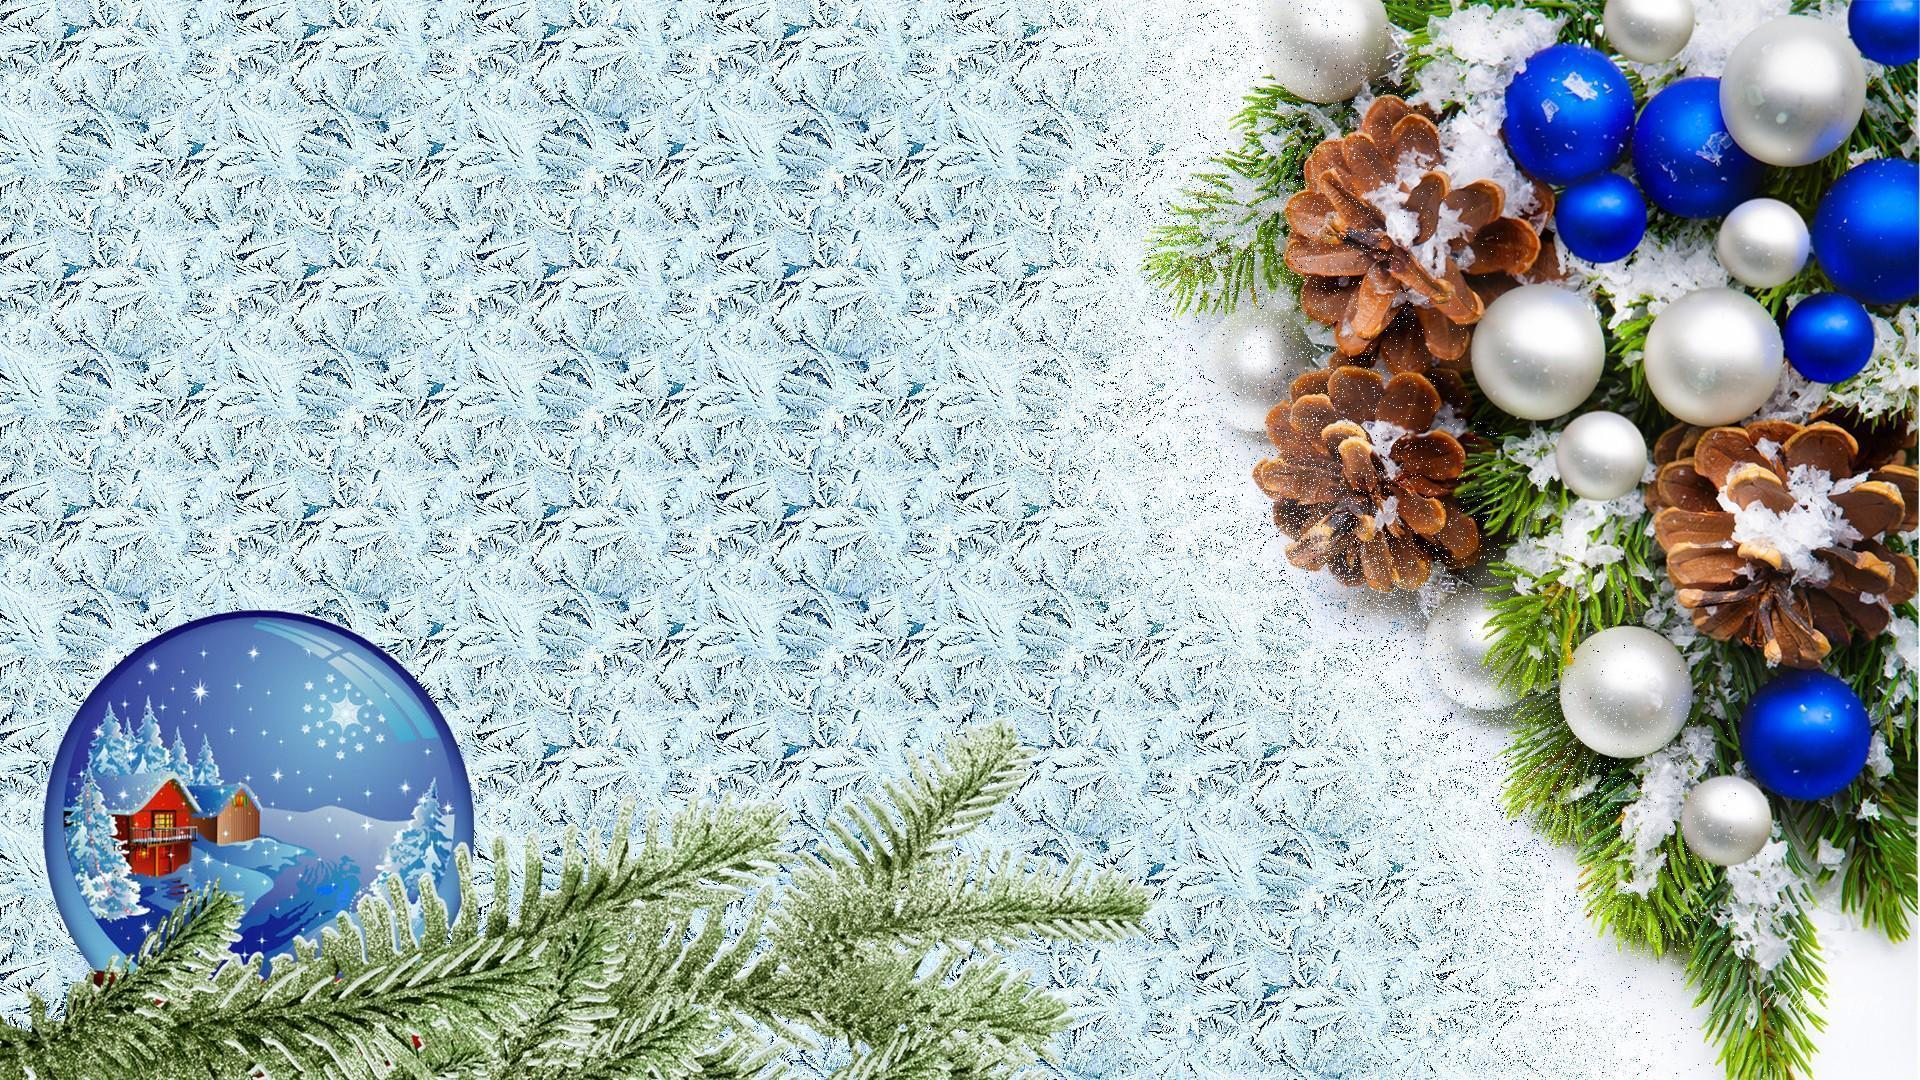 Winter Holiday Backgrounds Wallpaper Cave